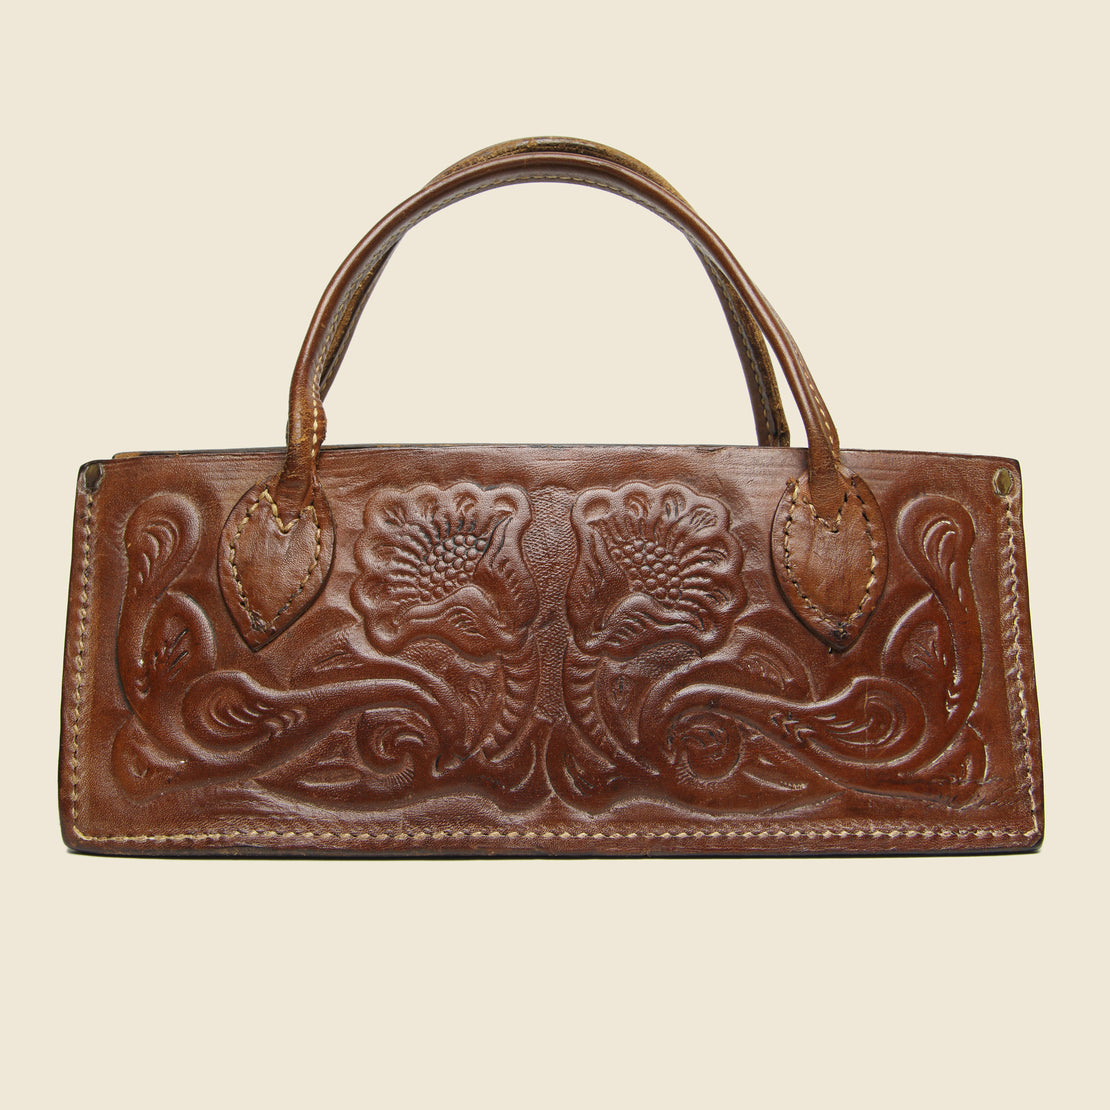 Vintage Tooled Leather Bag - Brown